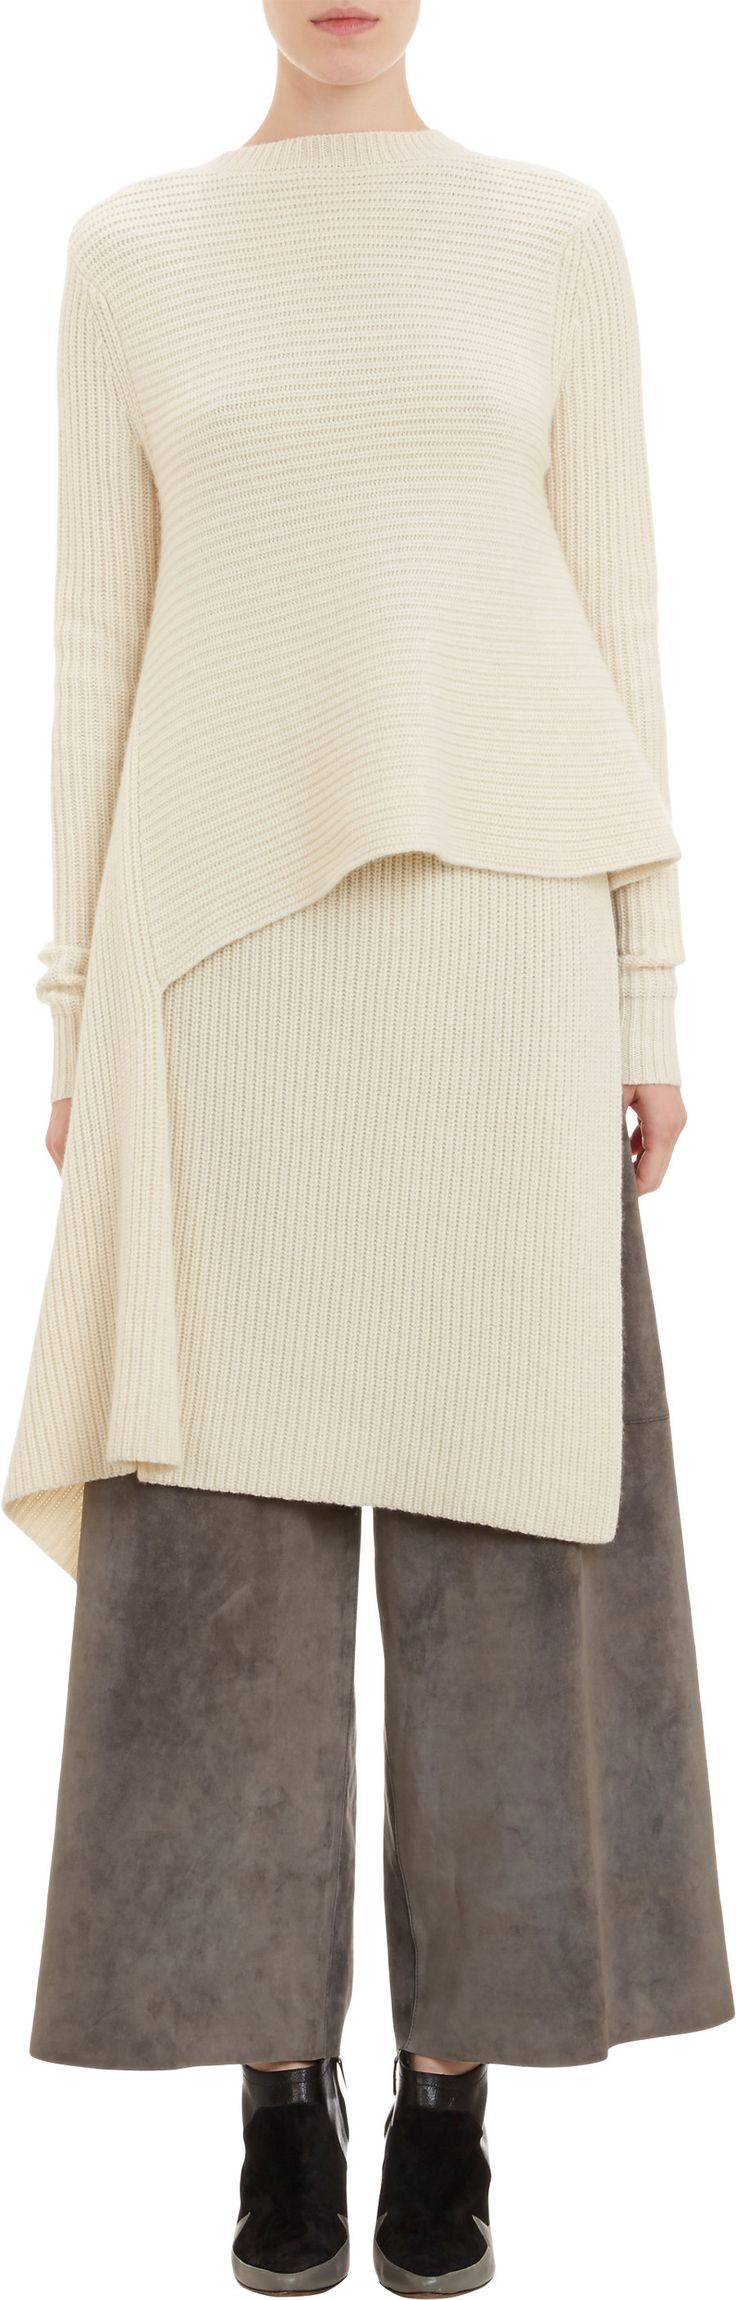 Derek Lam Origami-Wrap Sweater at Barneys.com